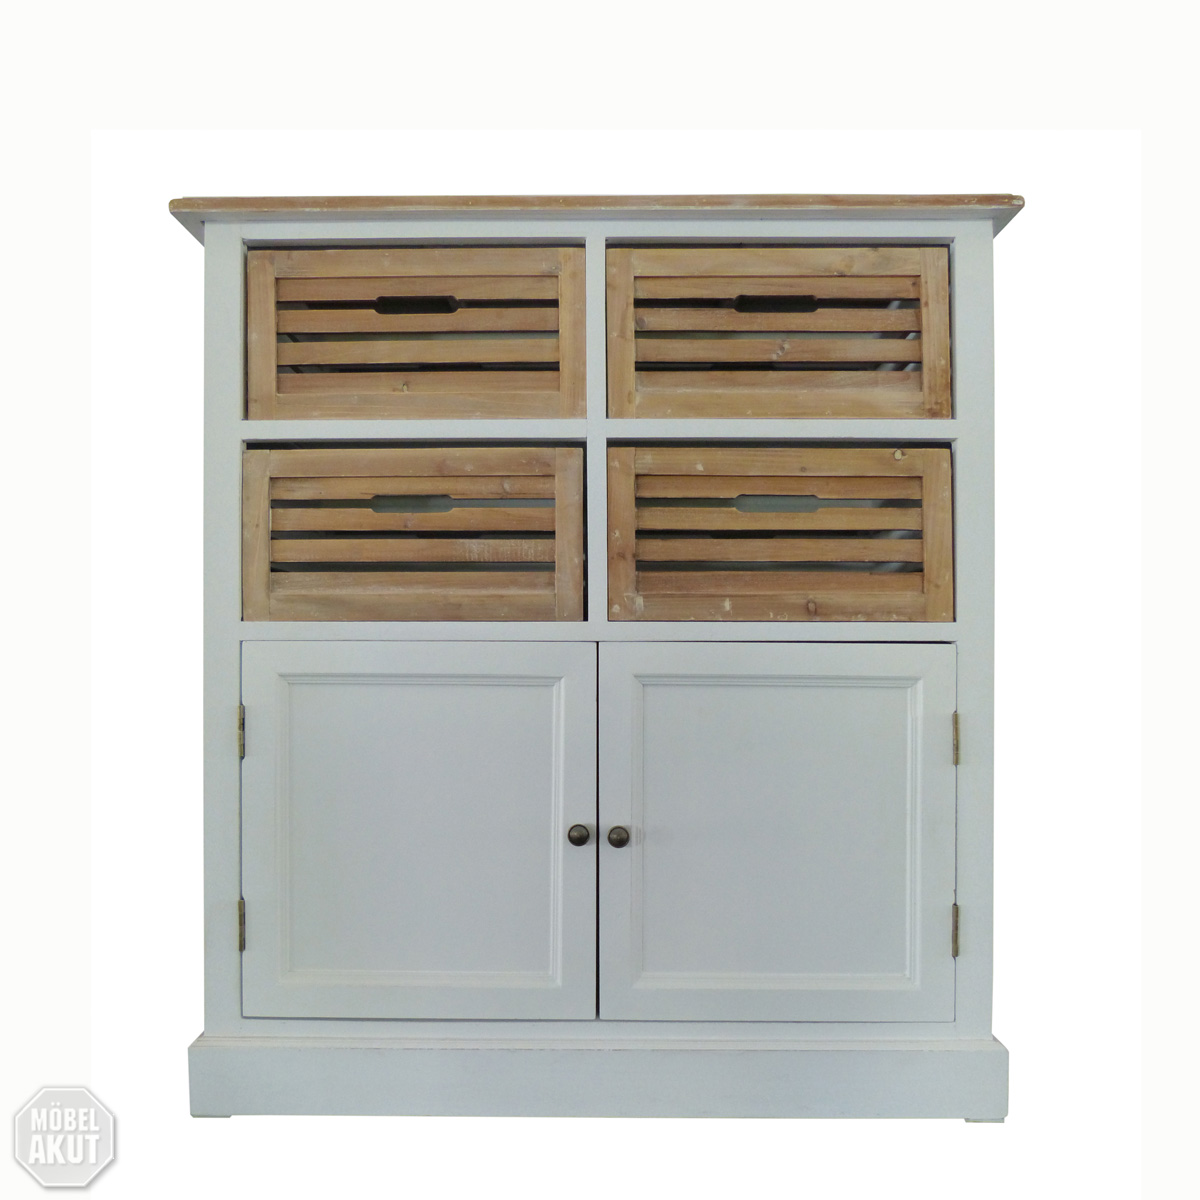 Küche Highboard Landhaus Highboard 1 Paris Kommode In Paulownia Holz Weiss Vintage